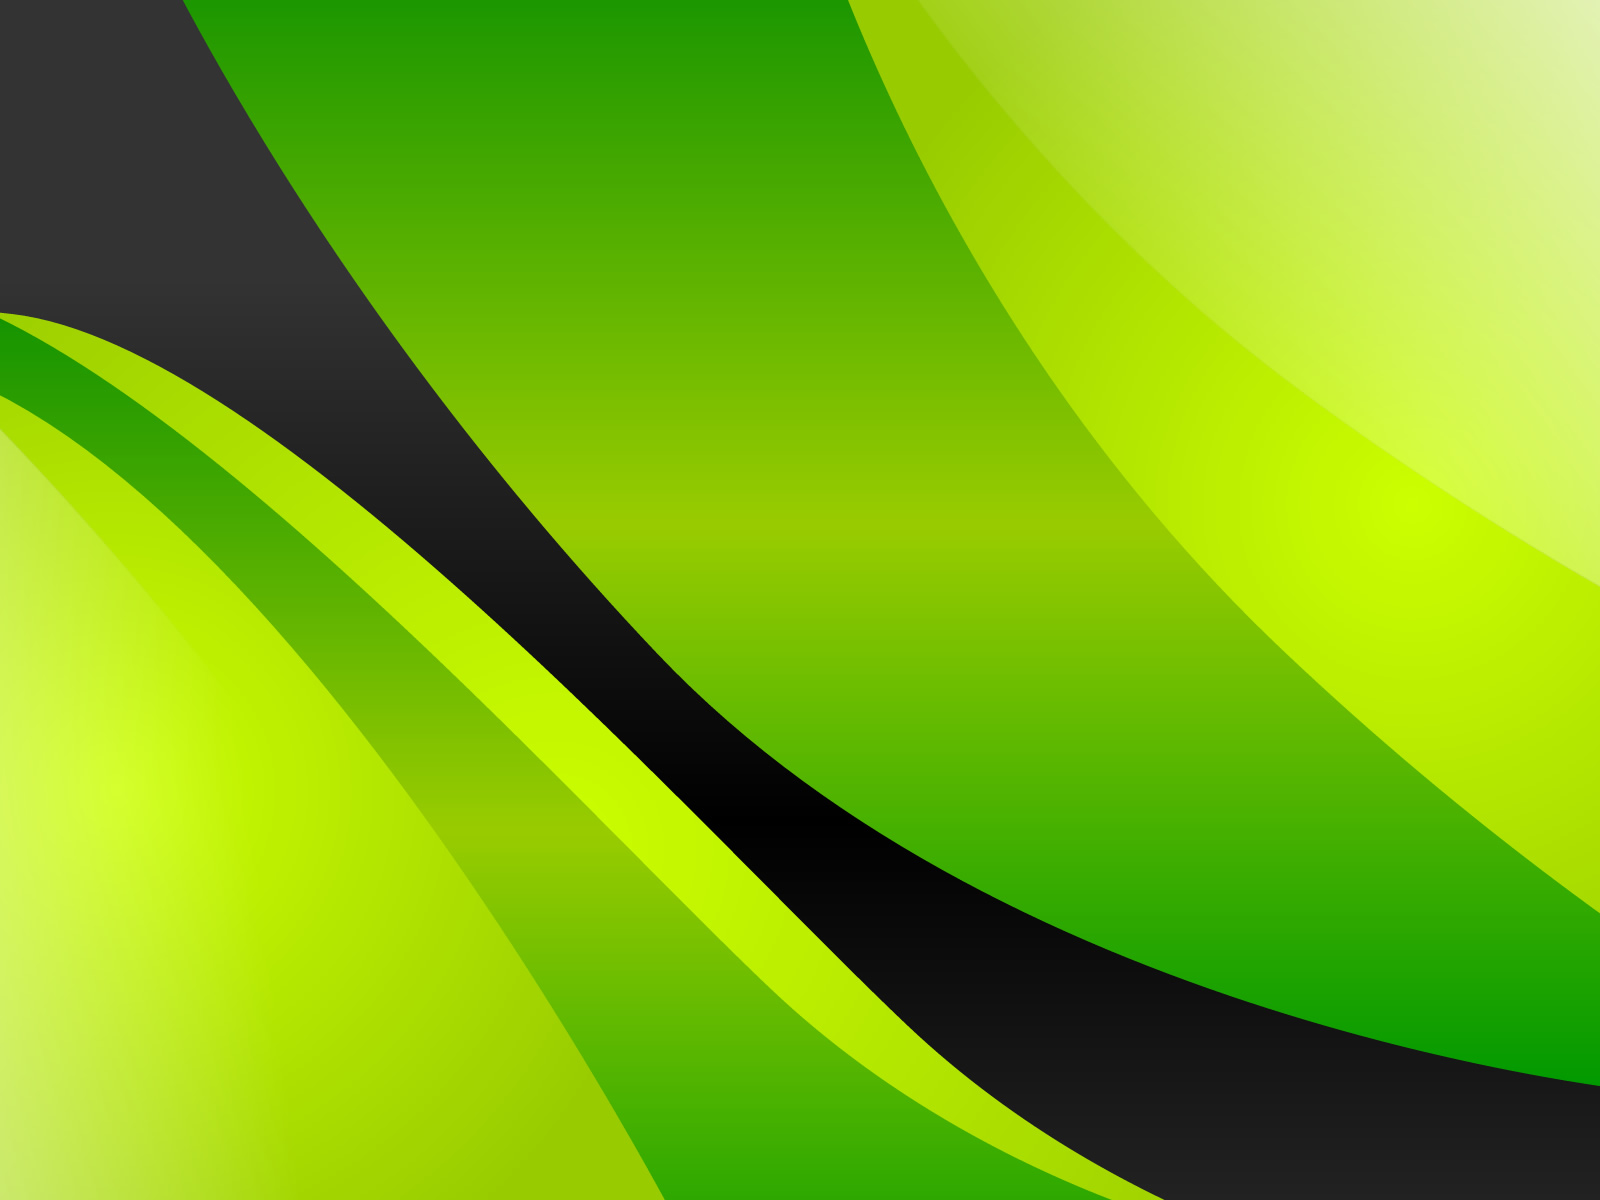 Black And White Wallpapers Green Yellow Abstract Wallpaper